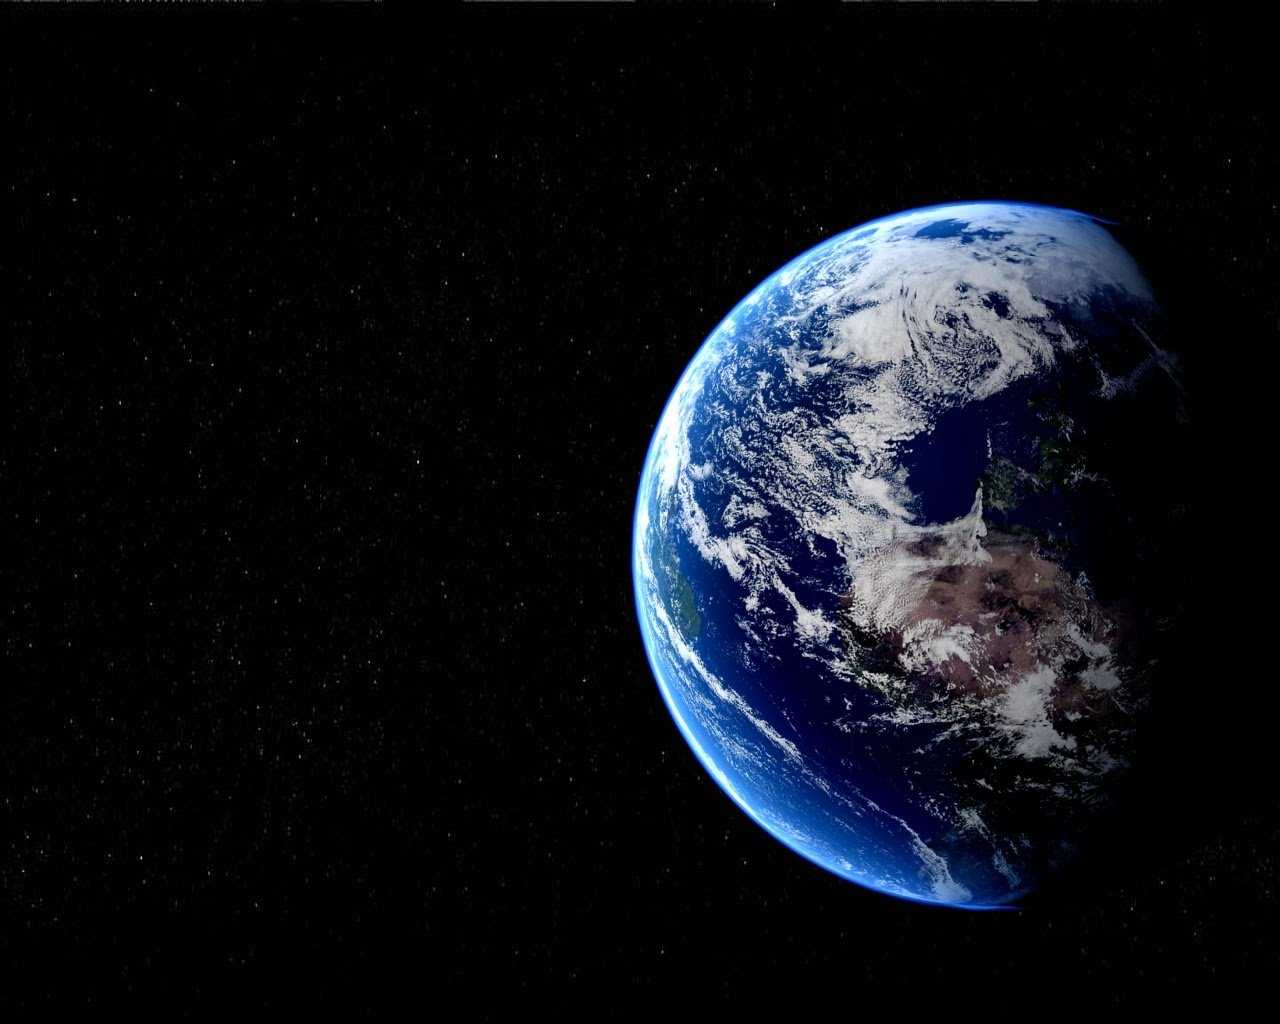 Space Wallpapers High Resolution: Earth Wallpaper High Resolution